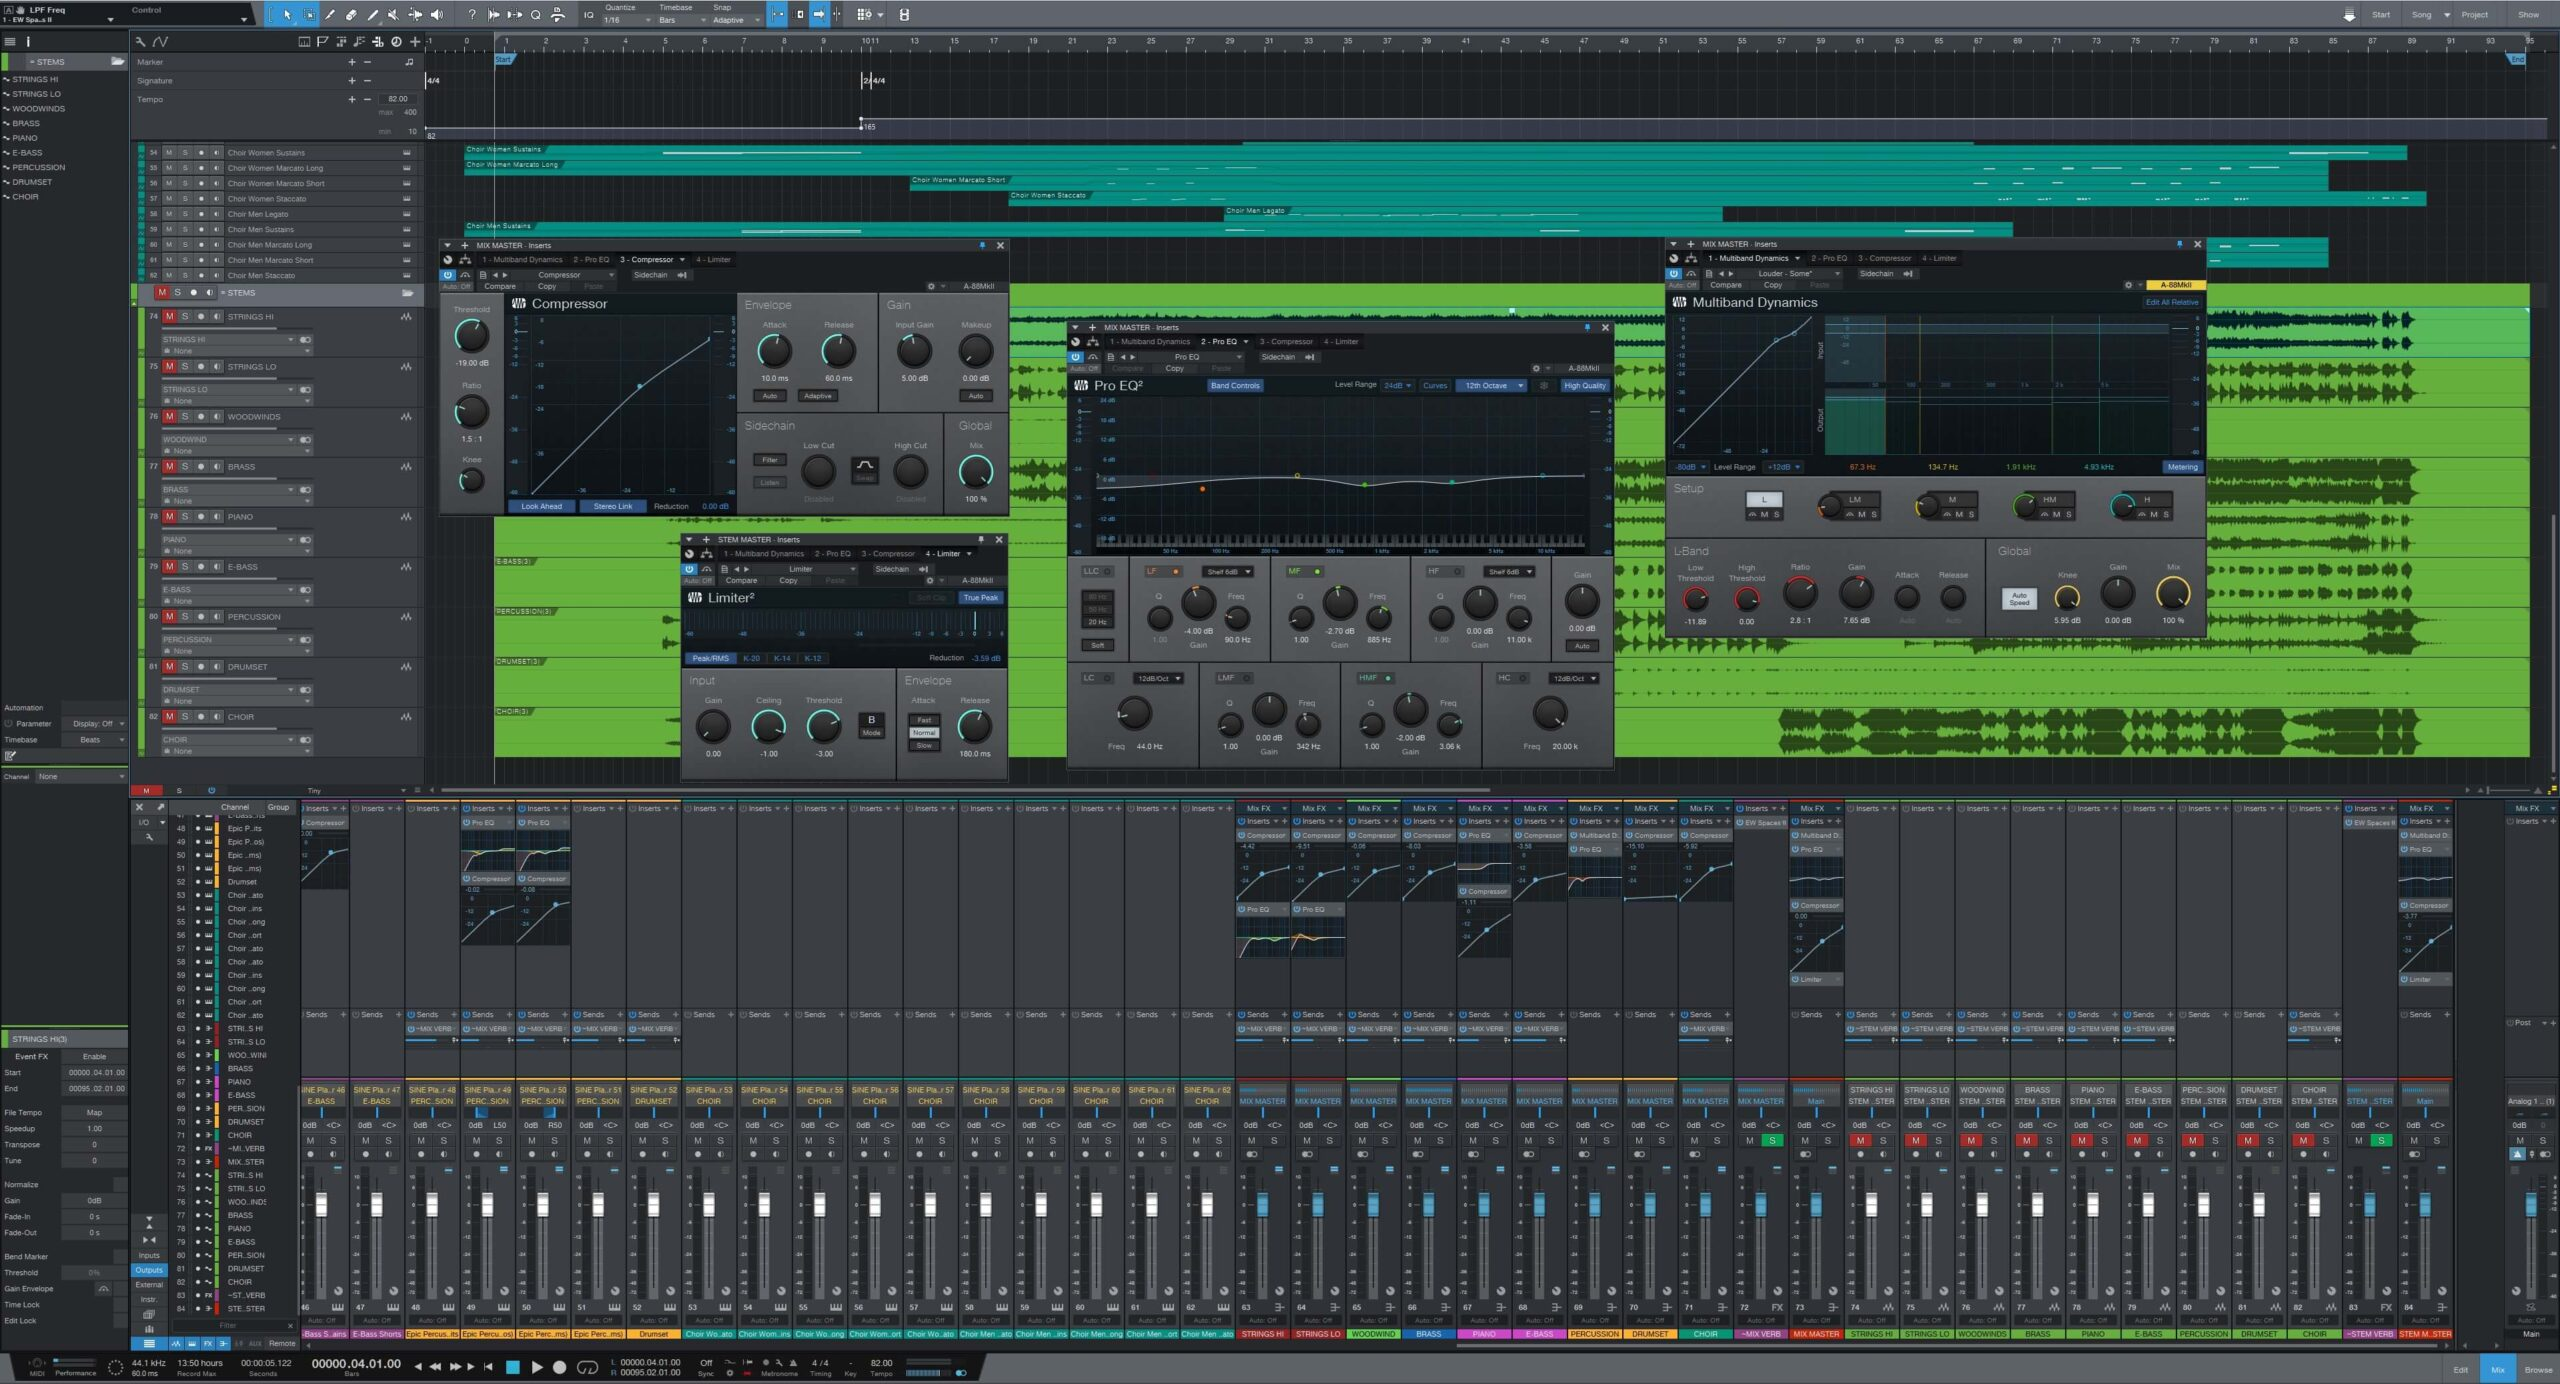 S1-stems and FX_4k